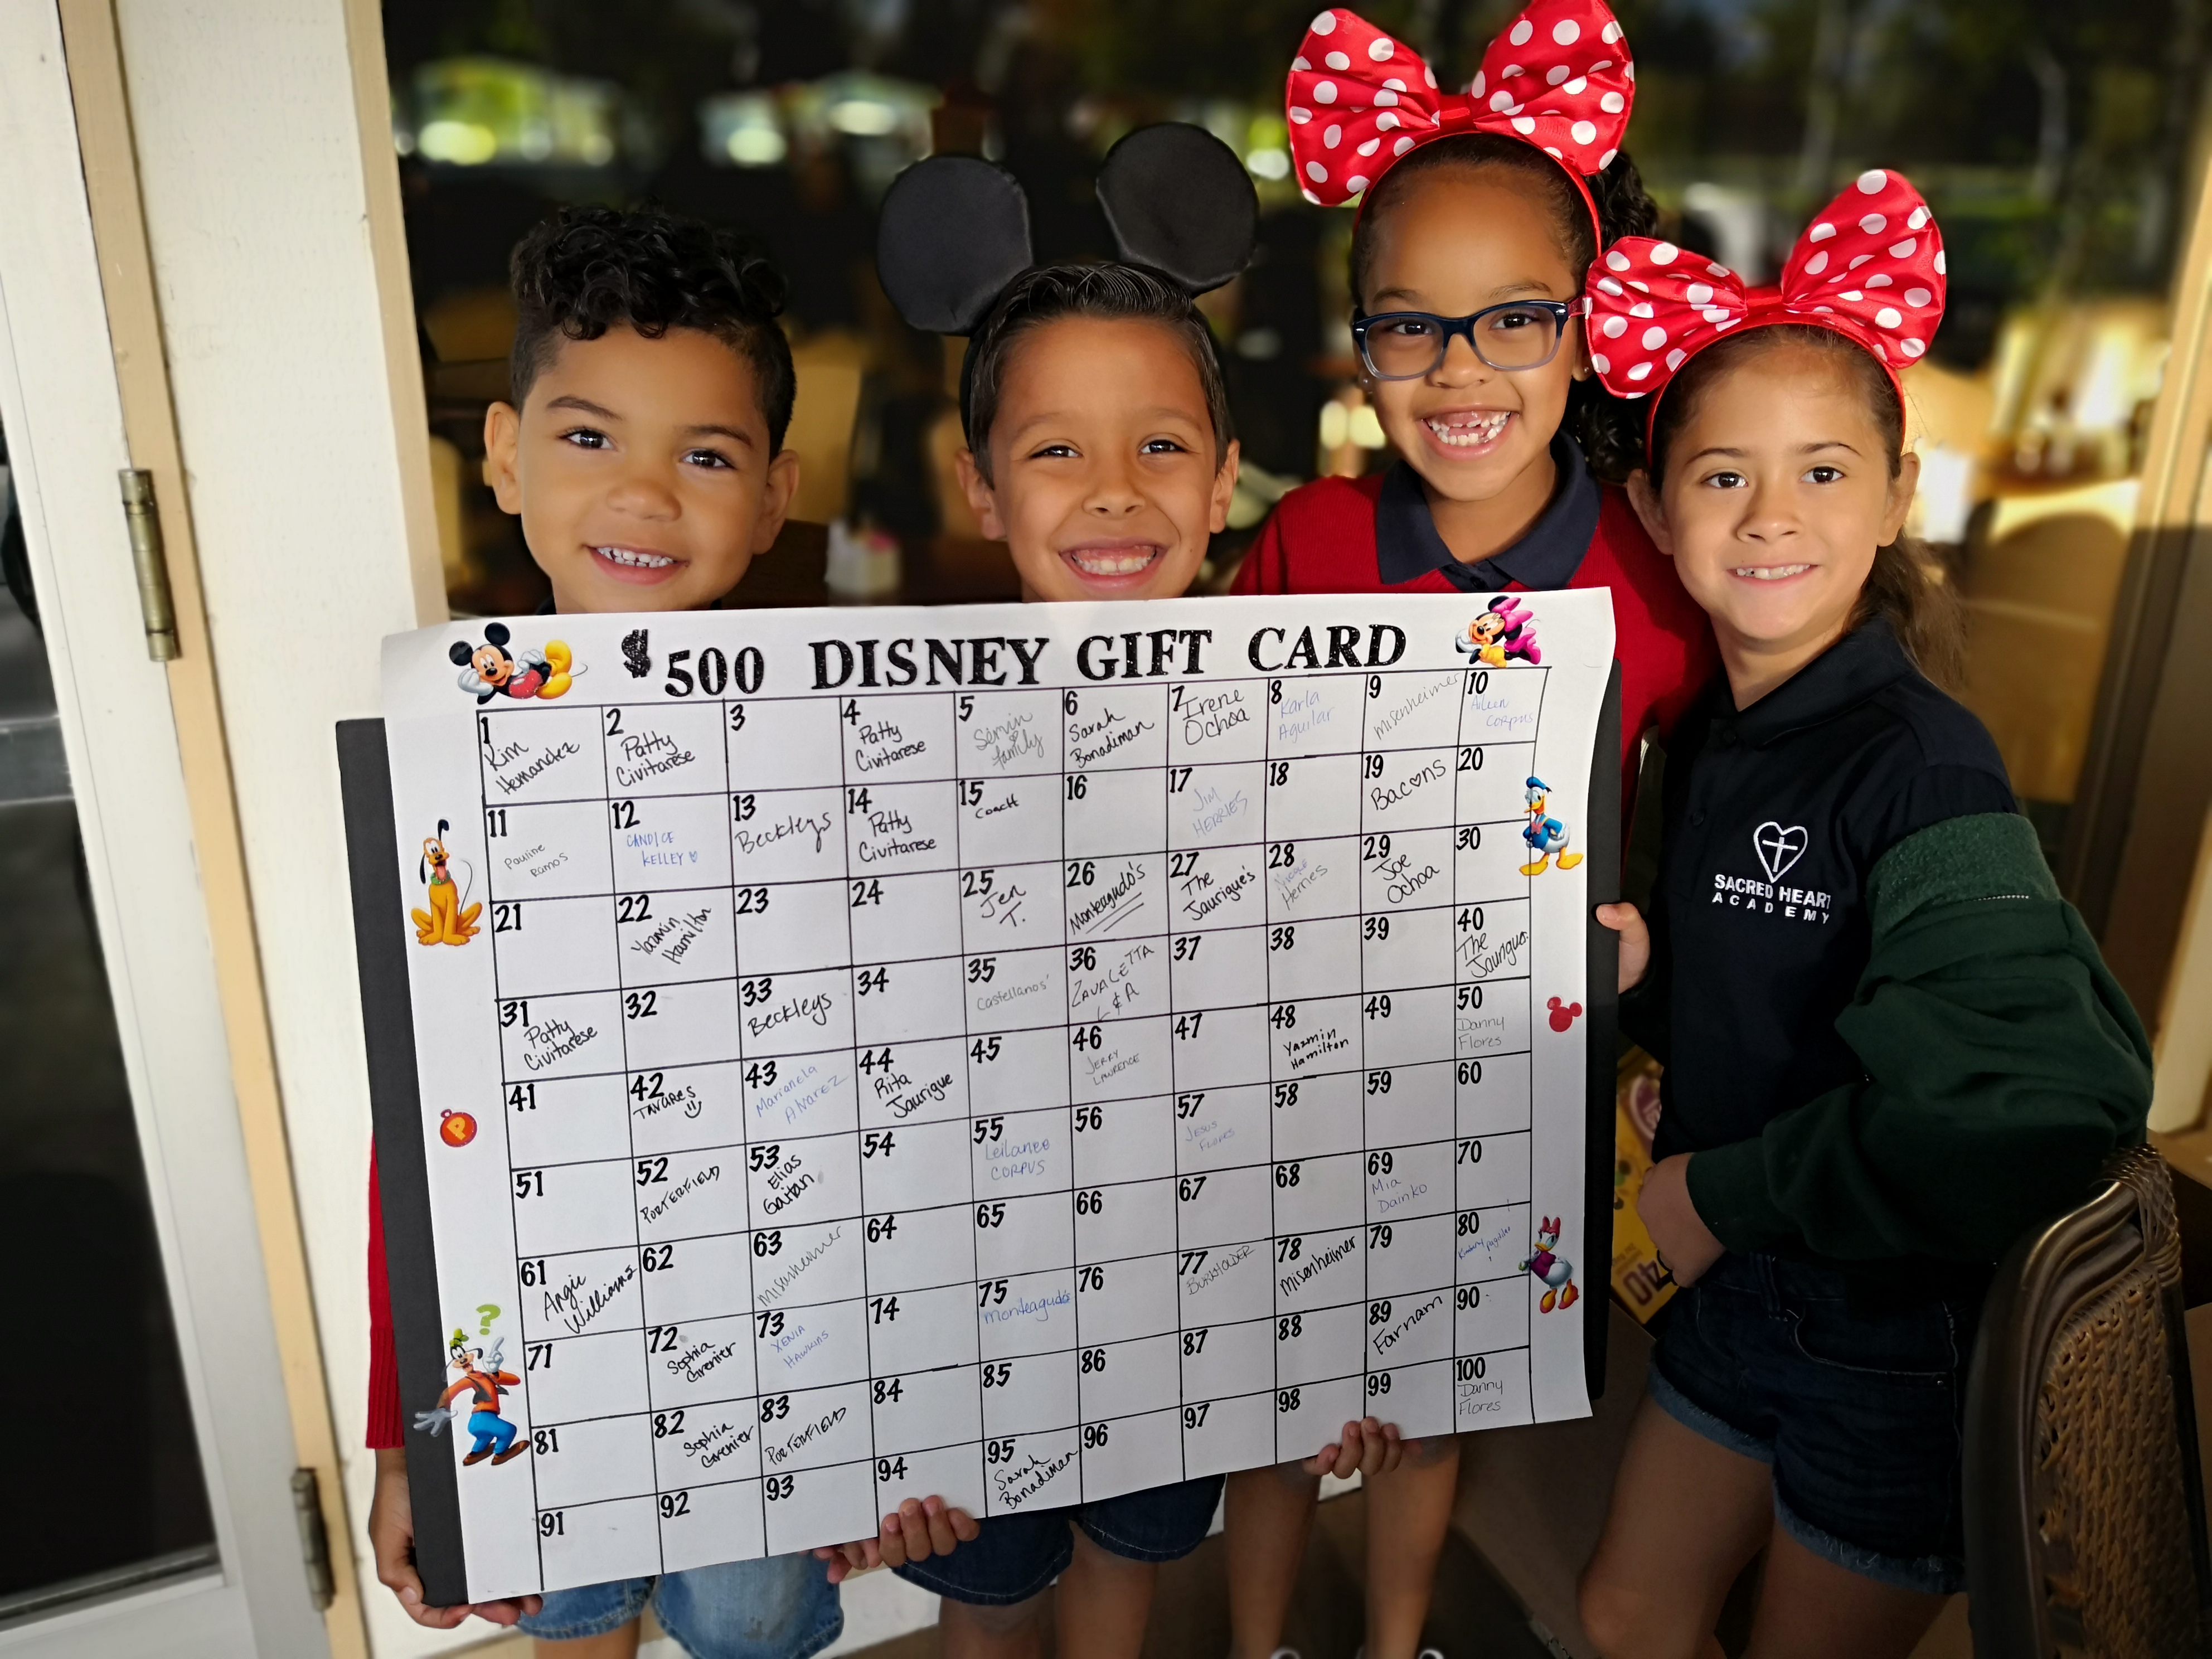 SHA Open - Default Image of Opportunity for $500 Disney Gift Card